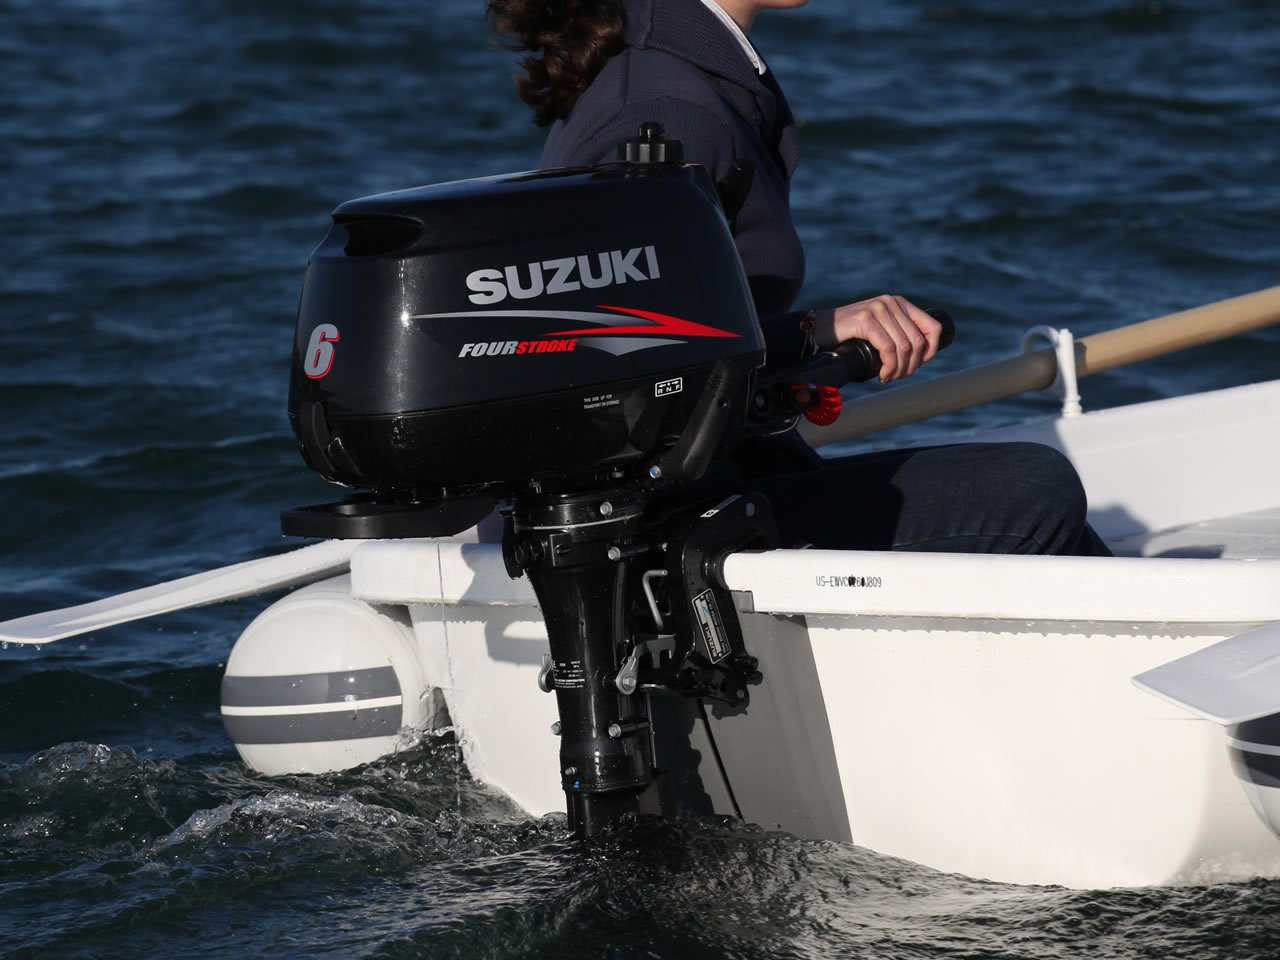 Best Small Outboard Motors | Our 2019 Buyer's Guide